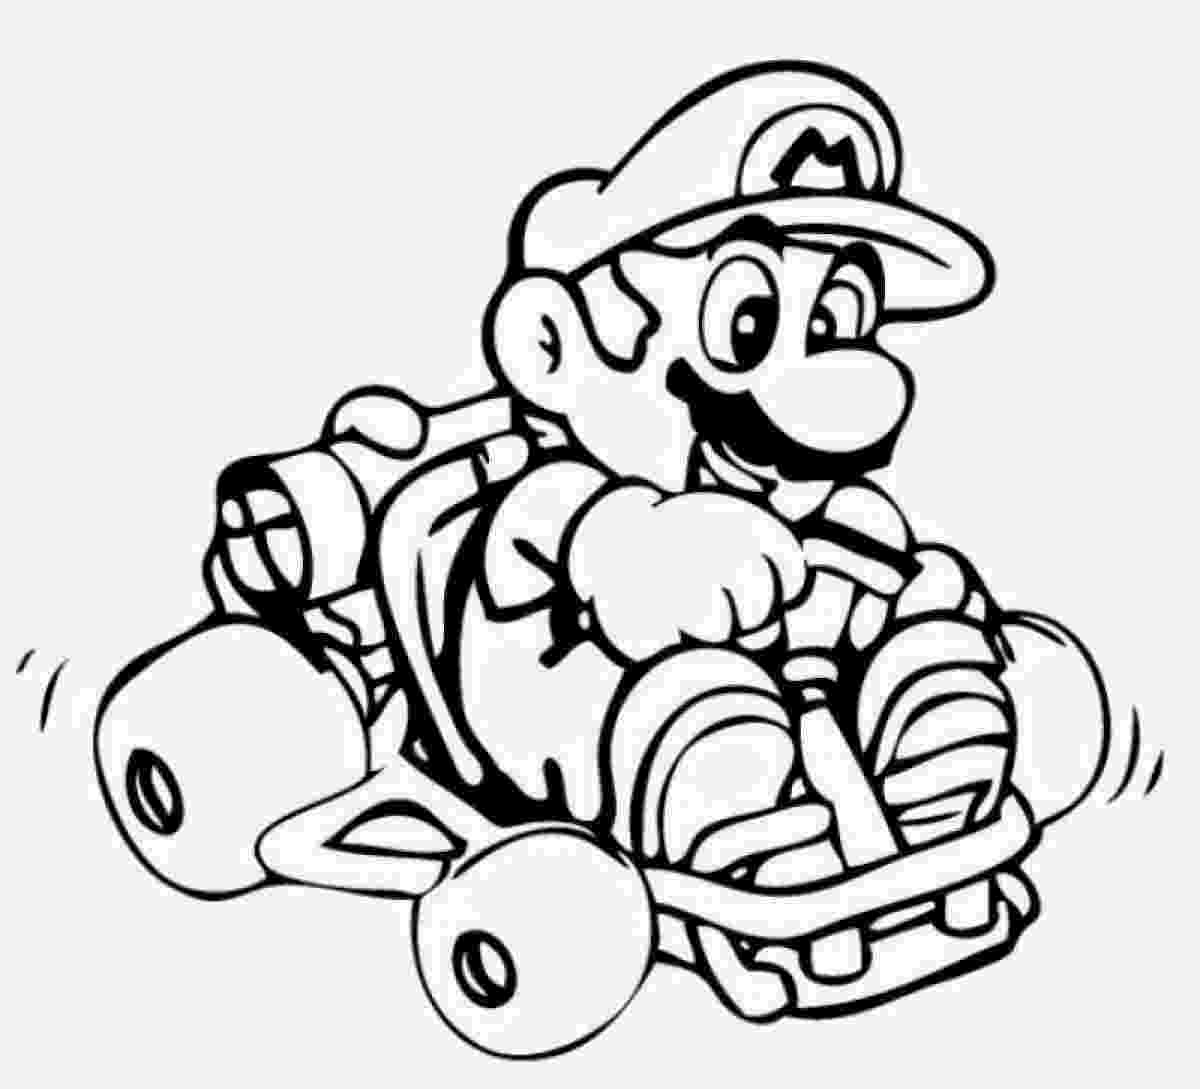 mario kart coloring pages mario kart coloring pages best coloring pages for kids mario coloring kart pages